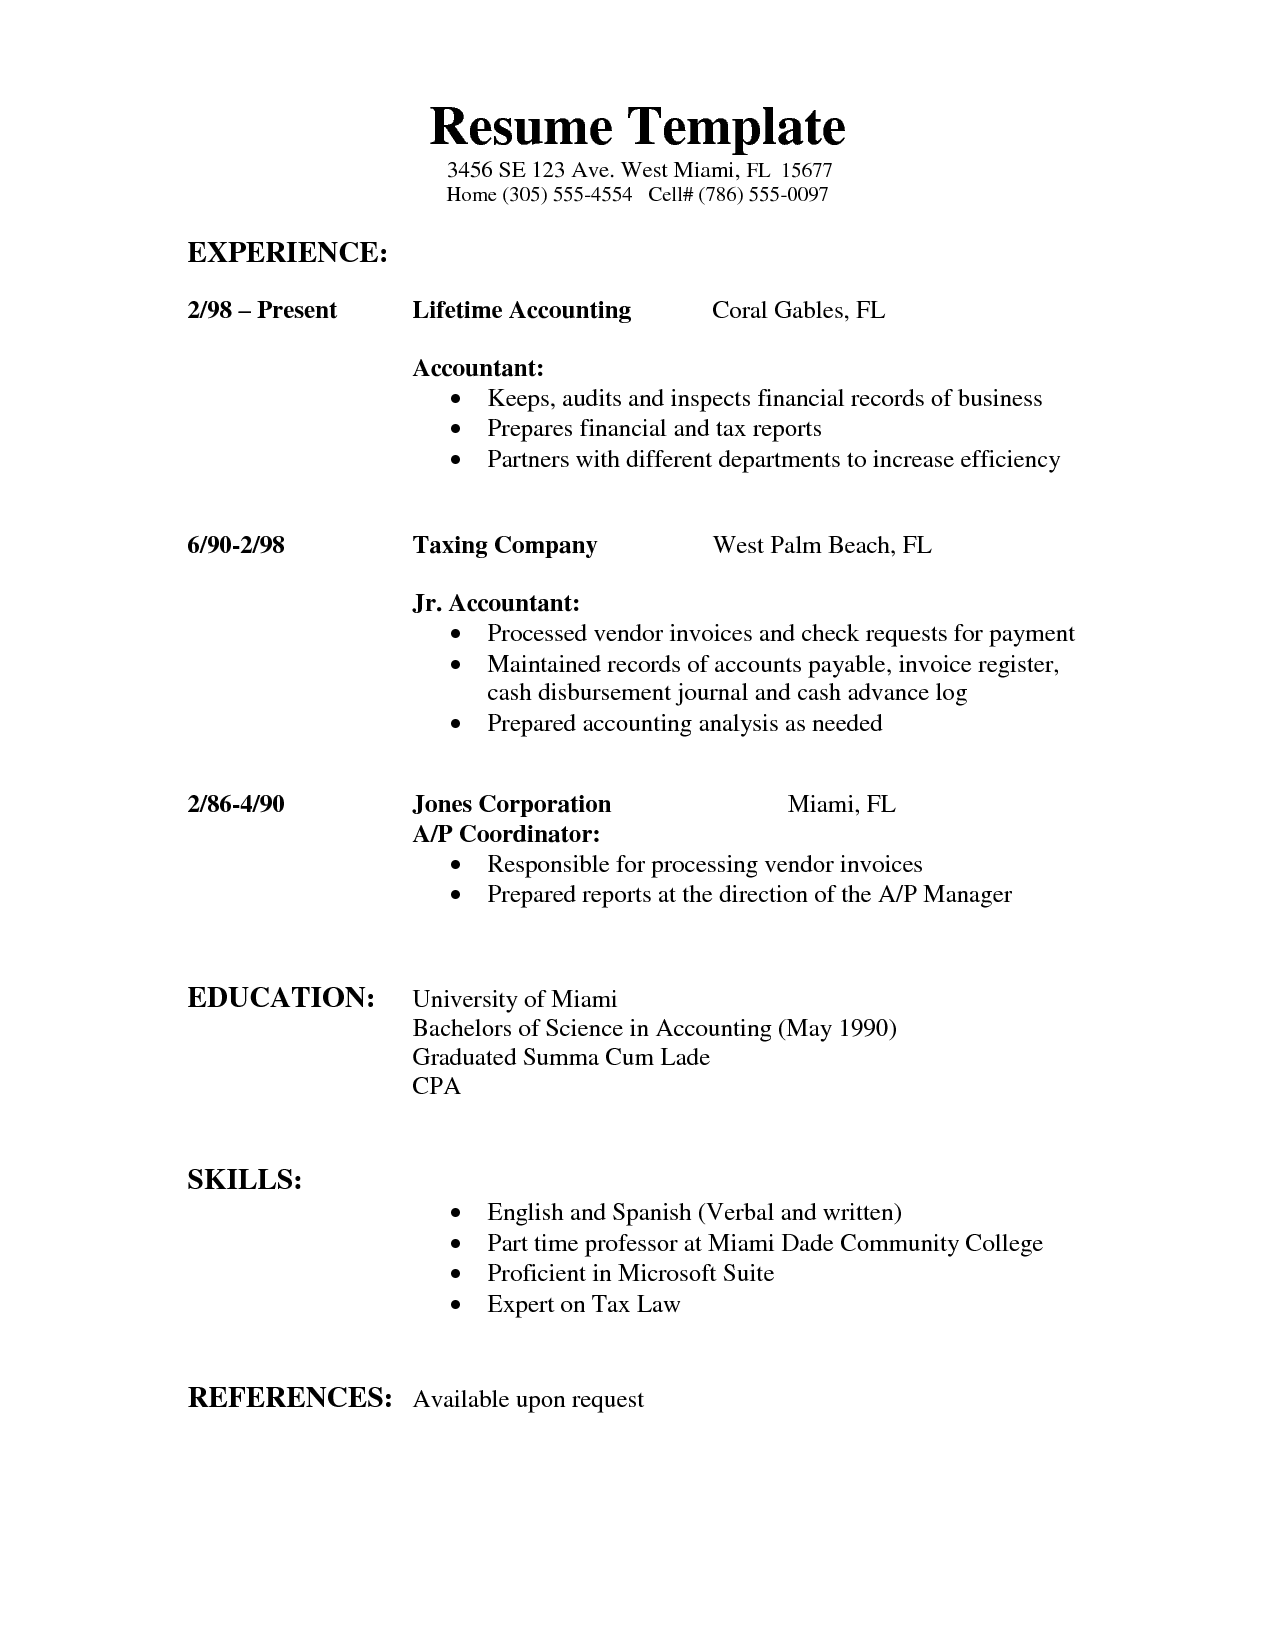 Letter sample  resumes | Resume Examples